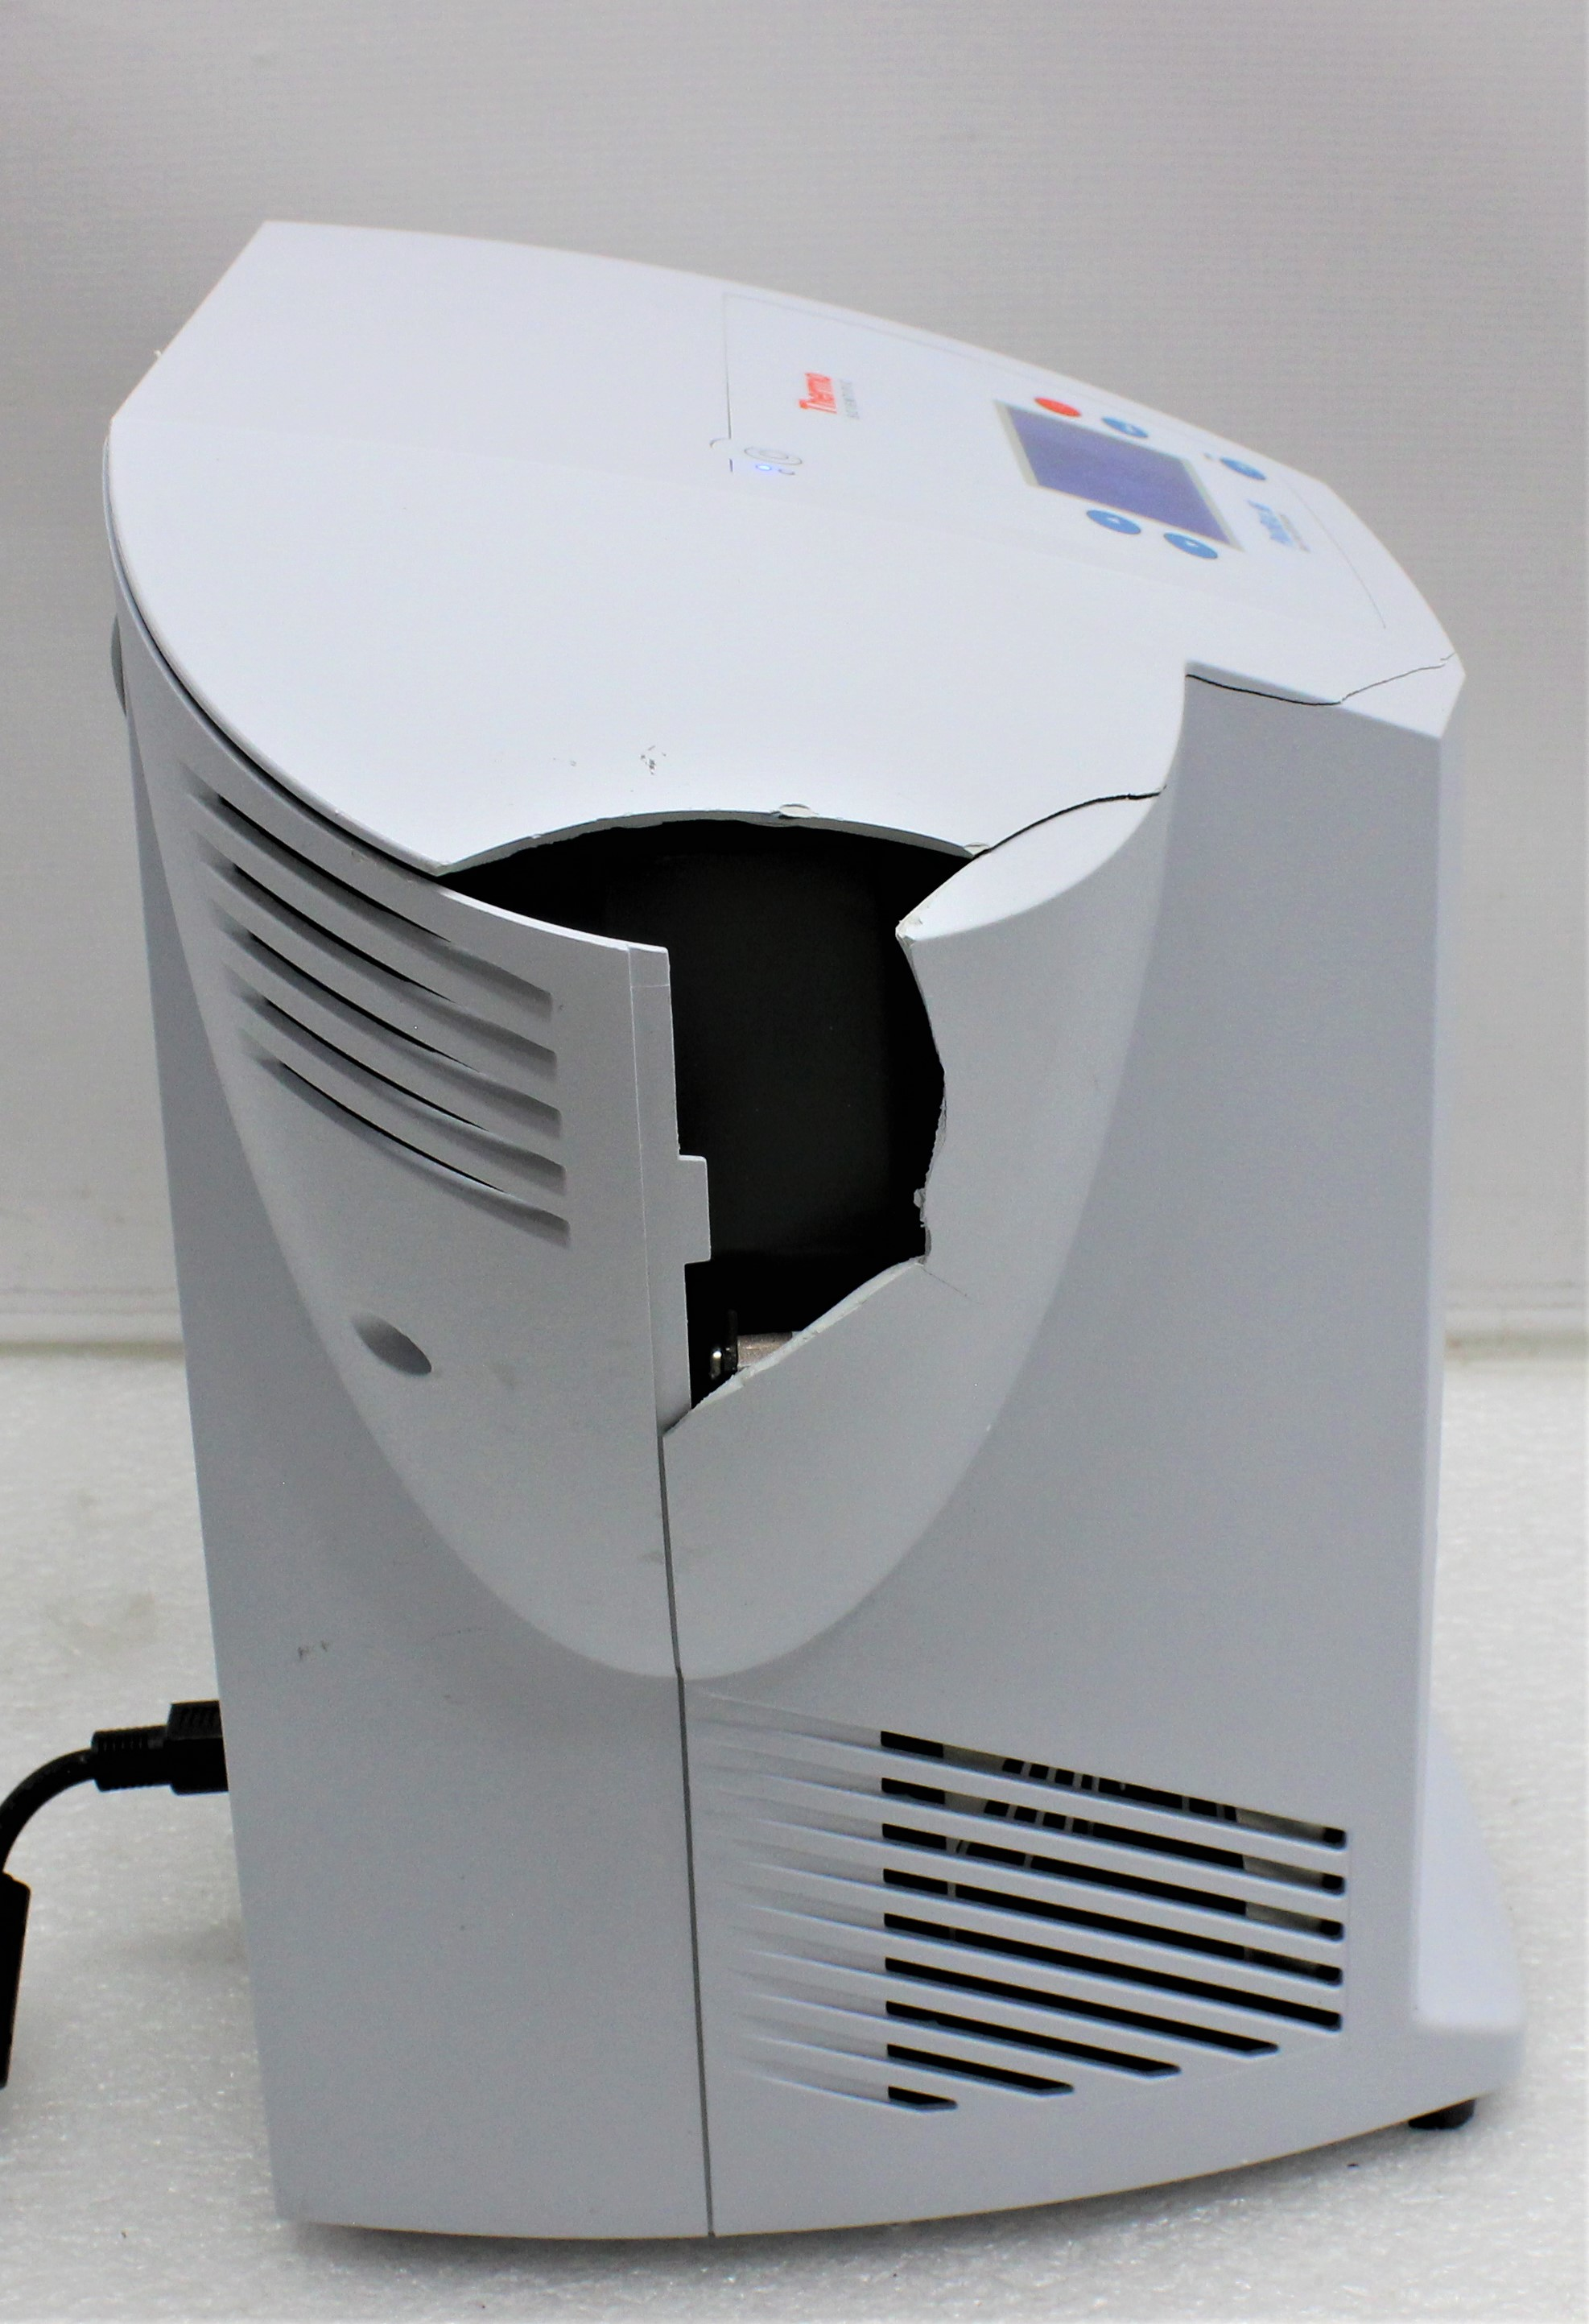 Image THERMO SCIENTIFIC PikoReal 96 Real-Time PCR System 1587222